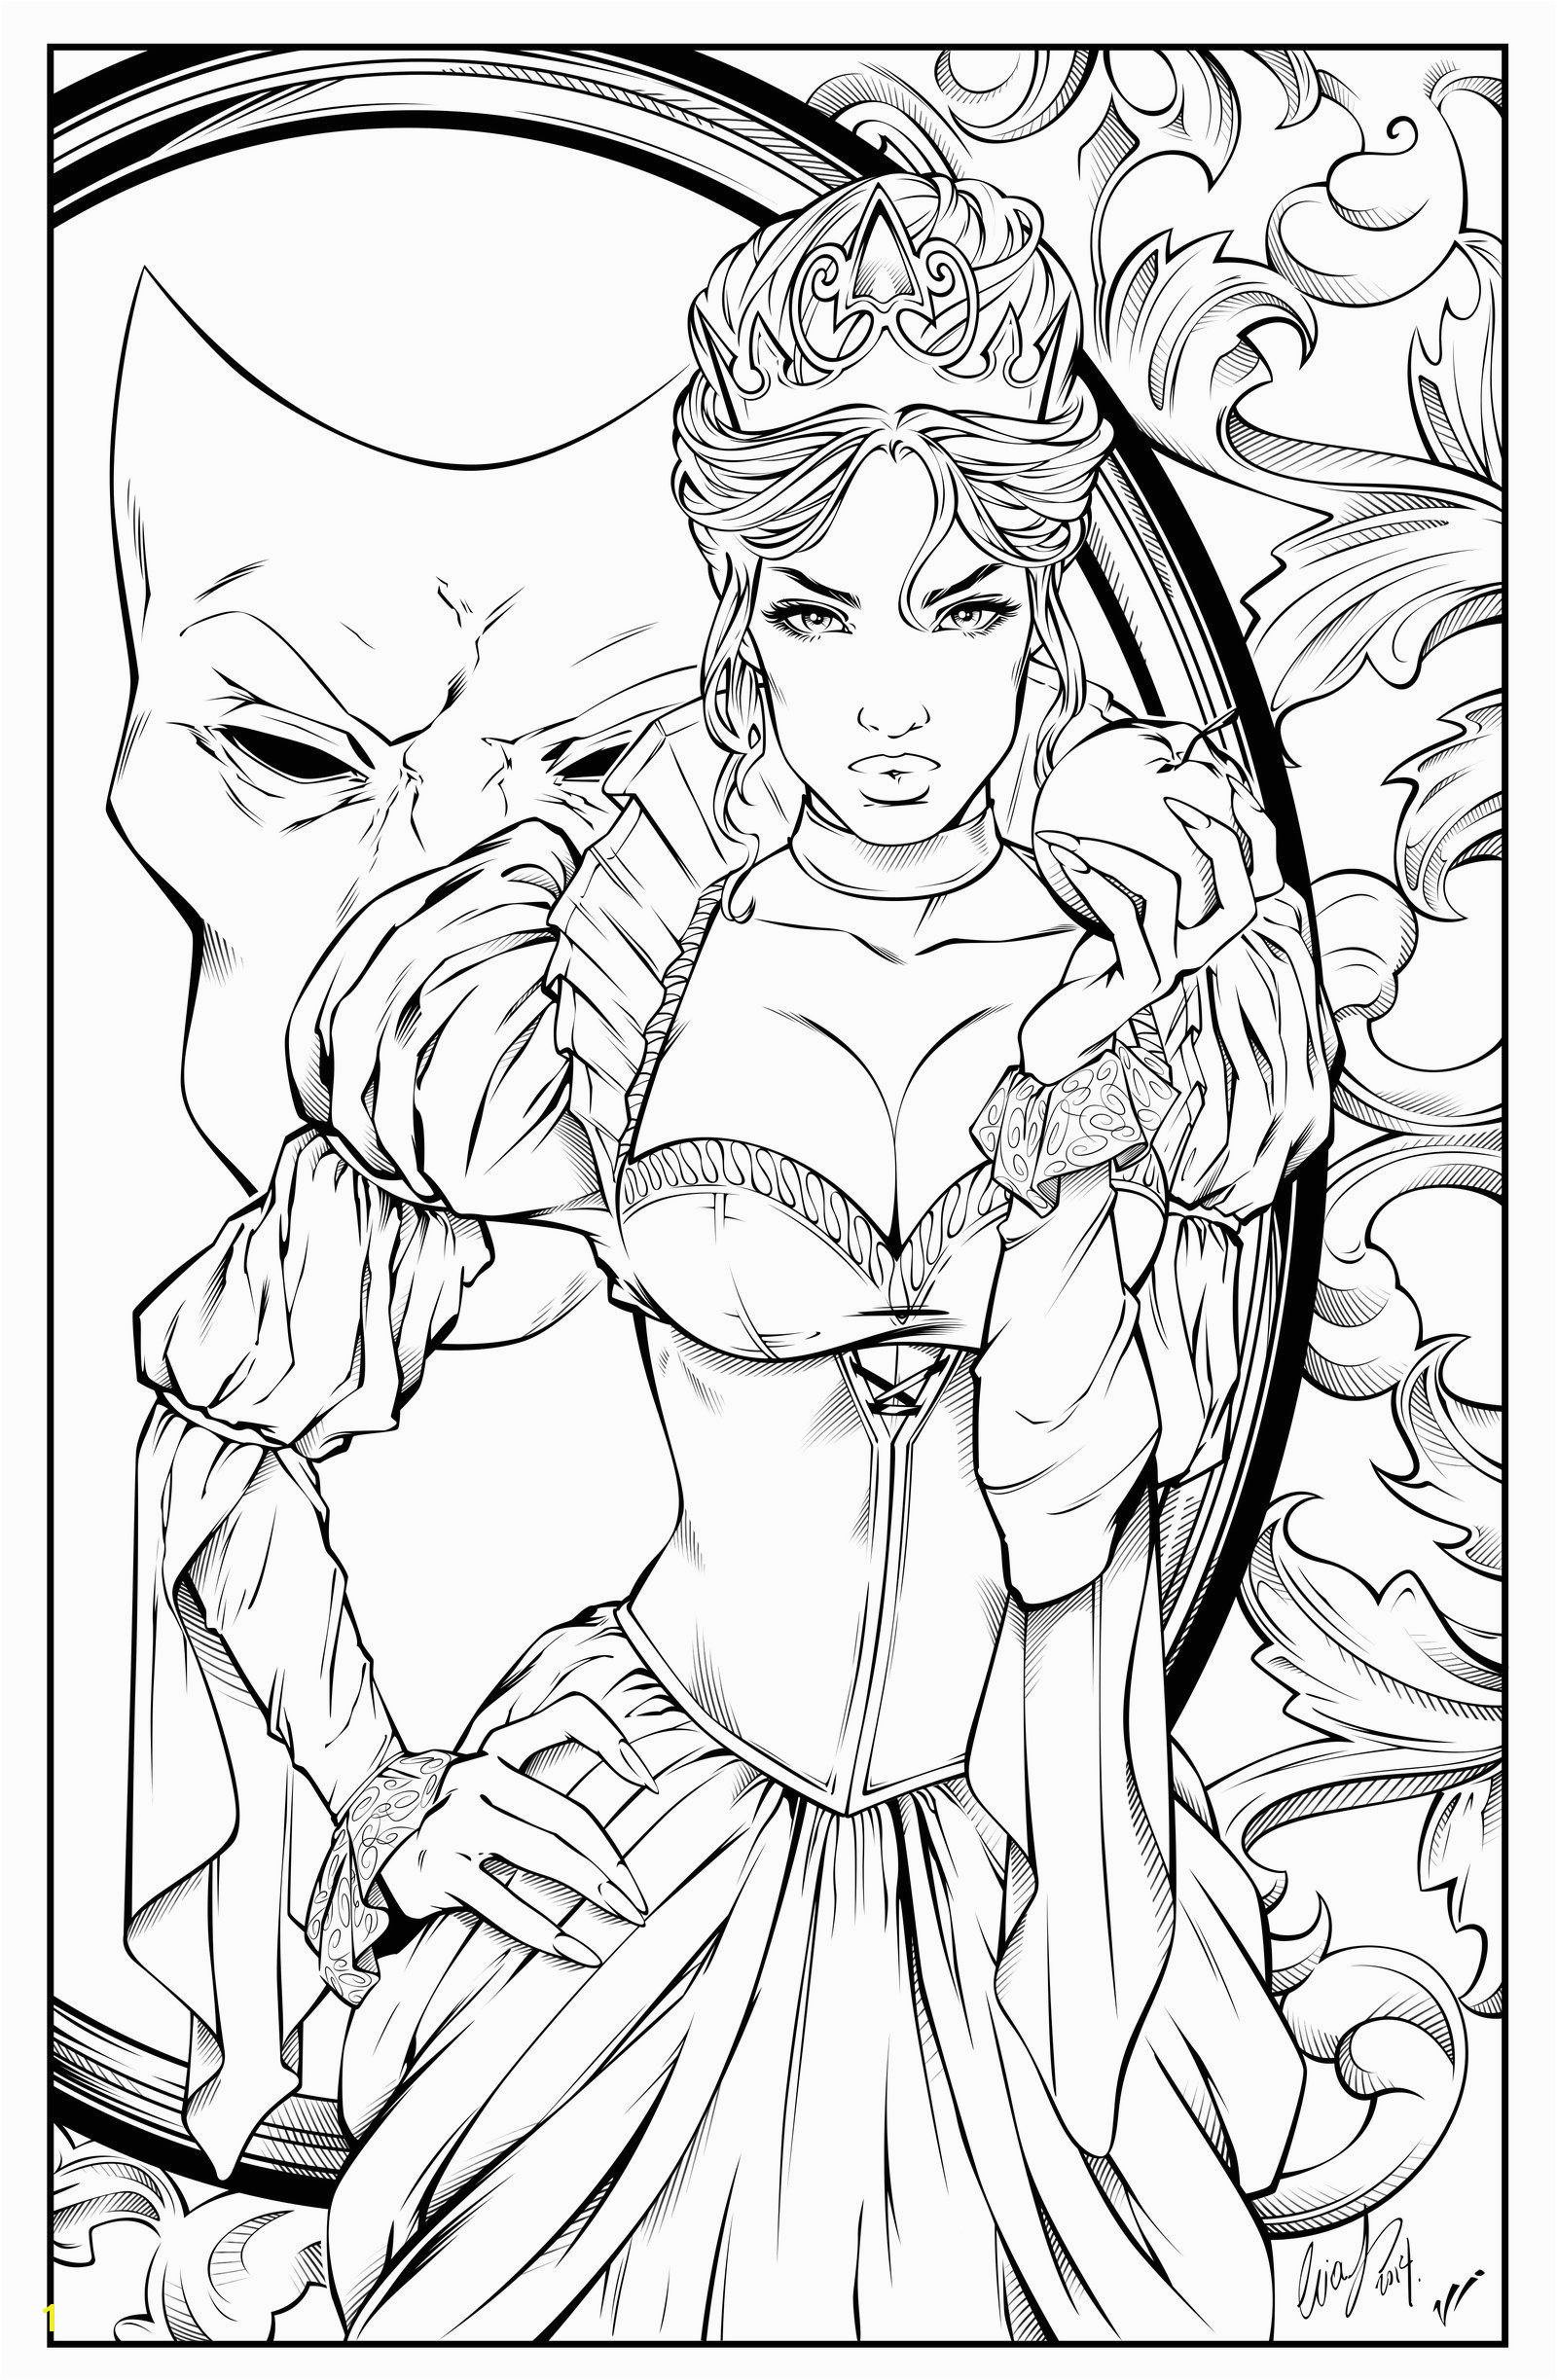 Evil Queen Coloring Page Evil Queen at Coloring Pages Evil Queen at Coloring Pages